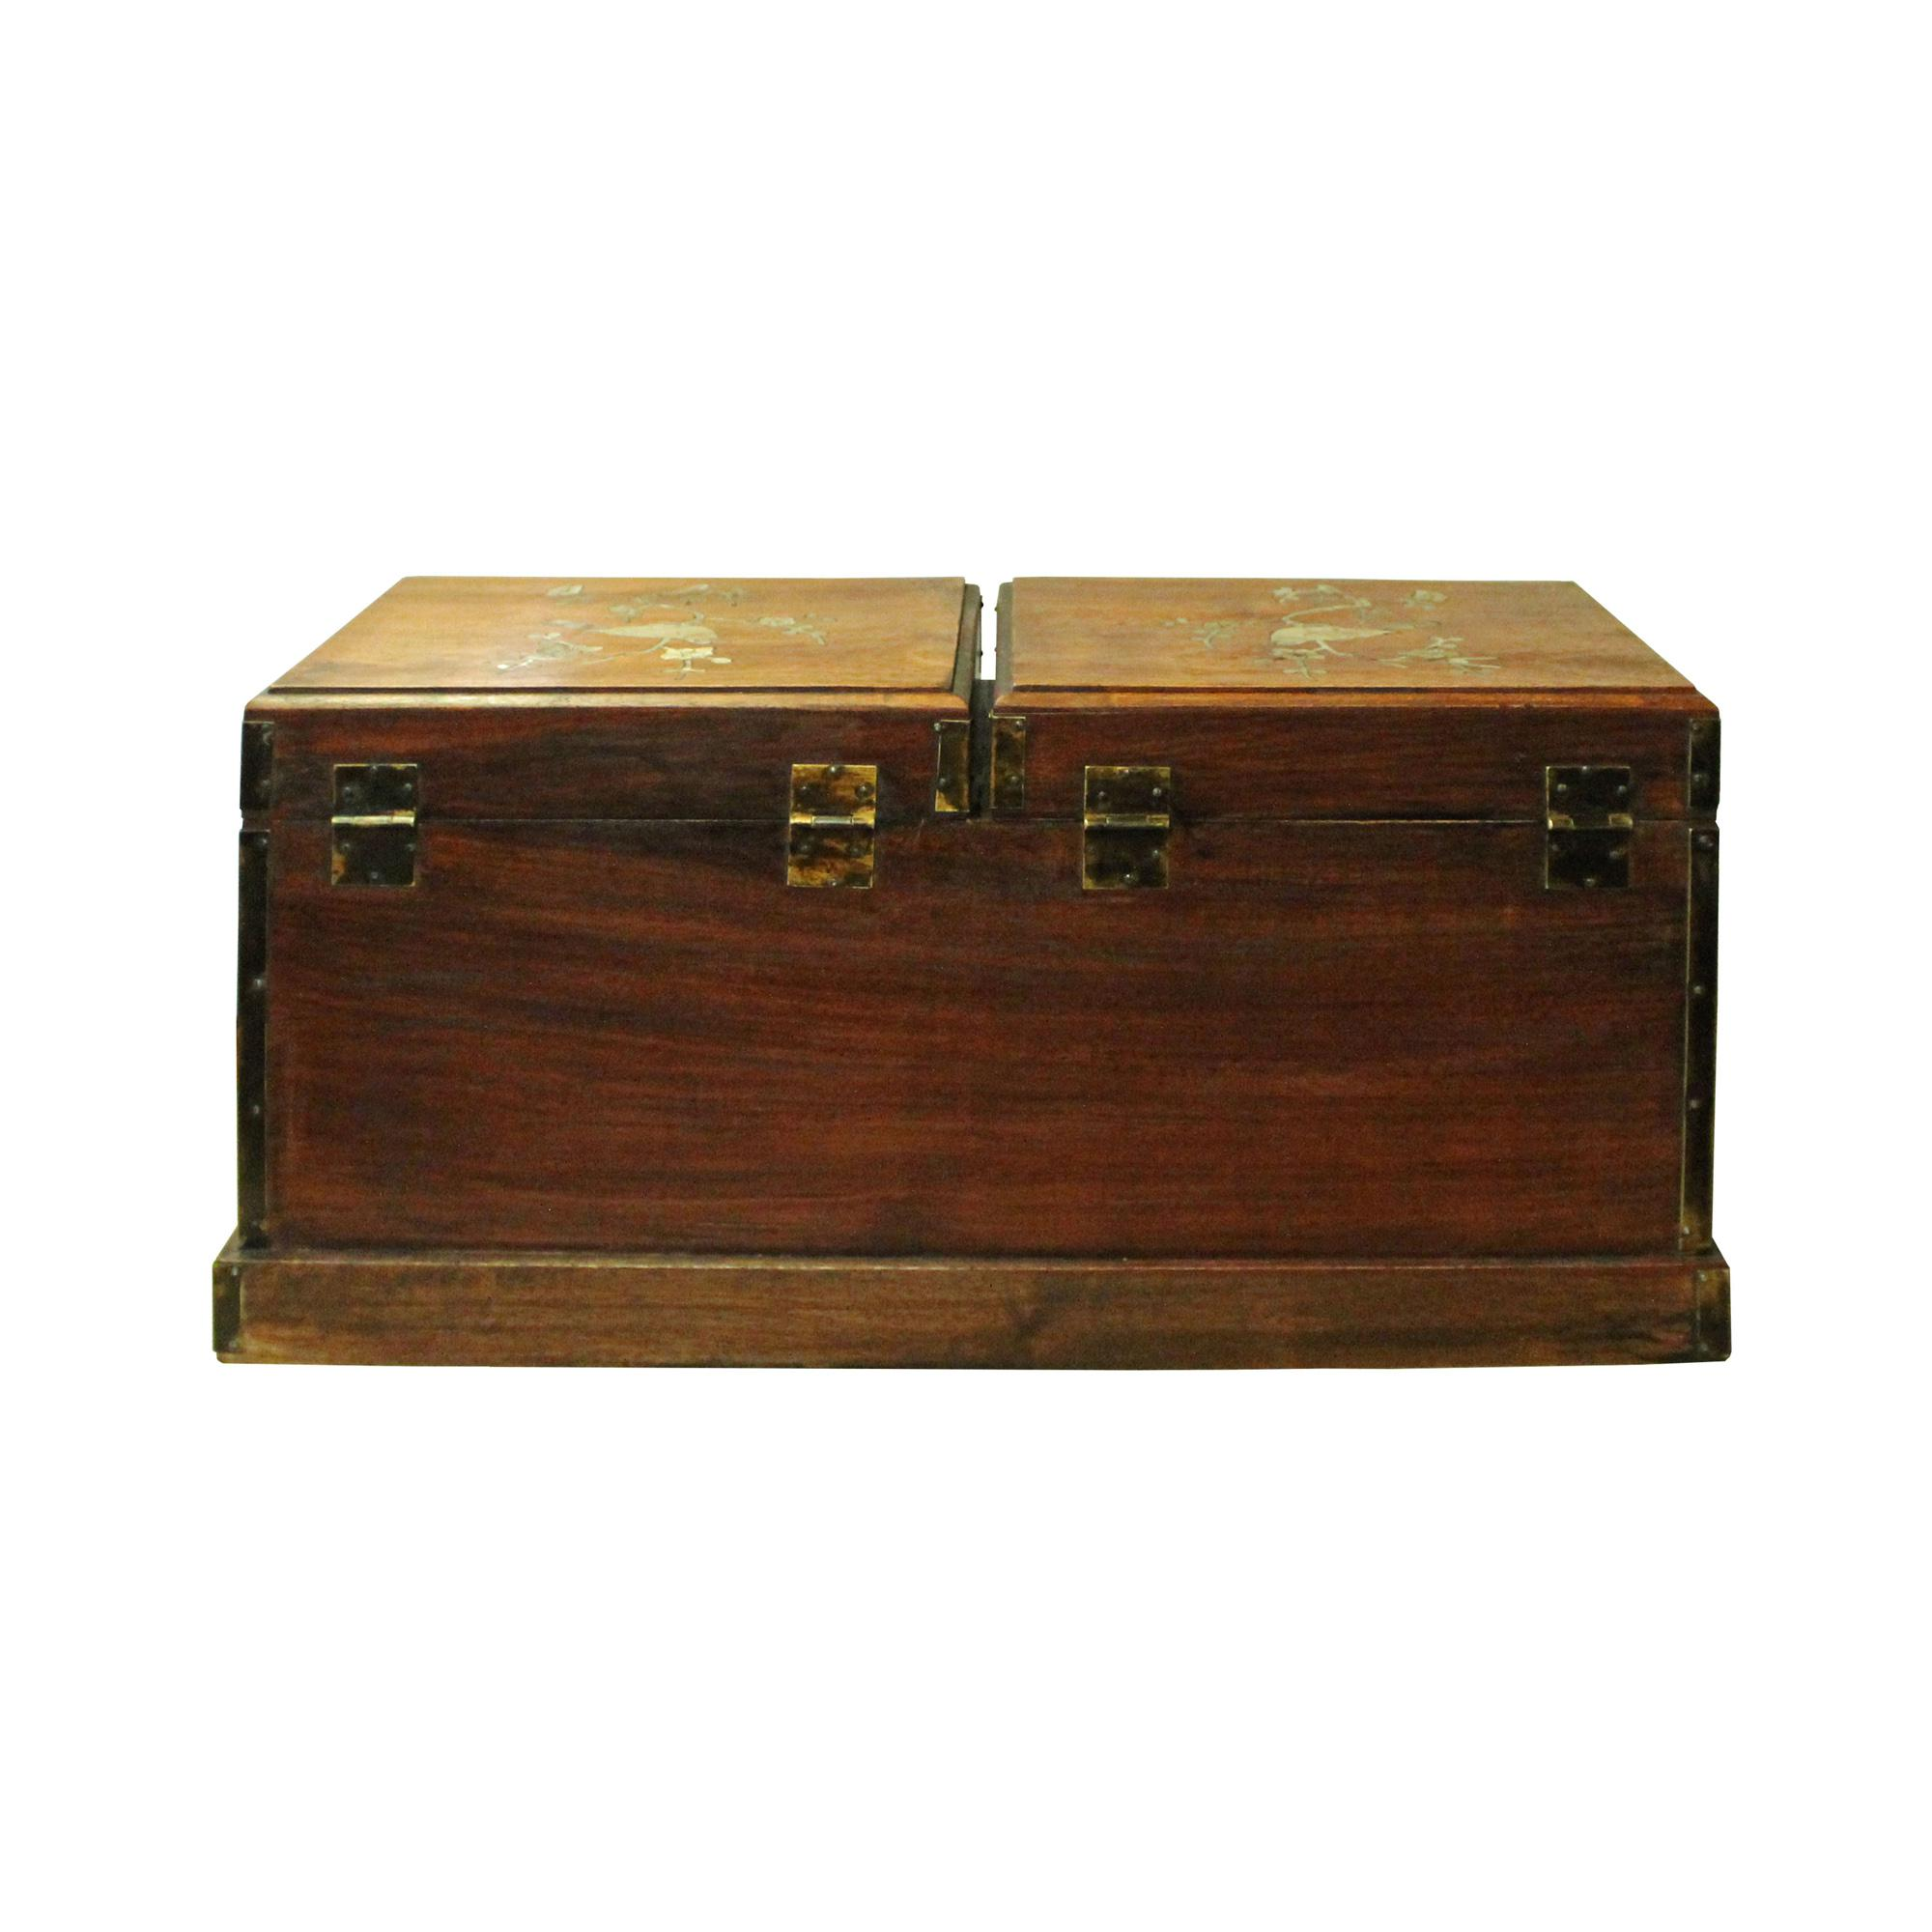 2010s Chinese Huali Rosewood Mother Of Pearl Inlay Jewelry Storage Box  Chest For Sale   Image